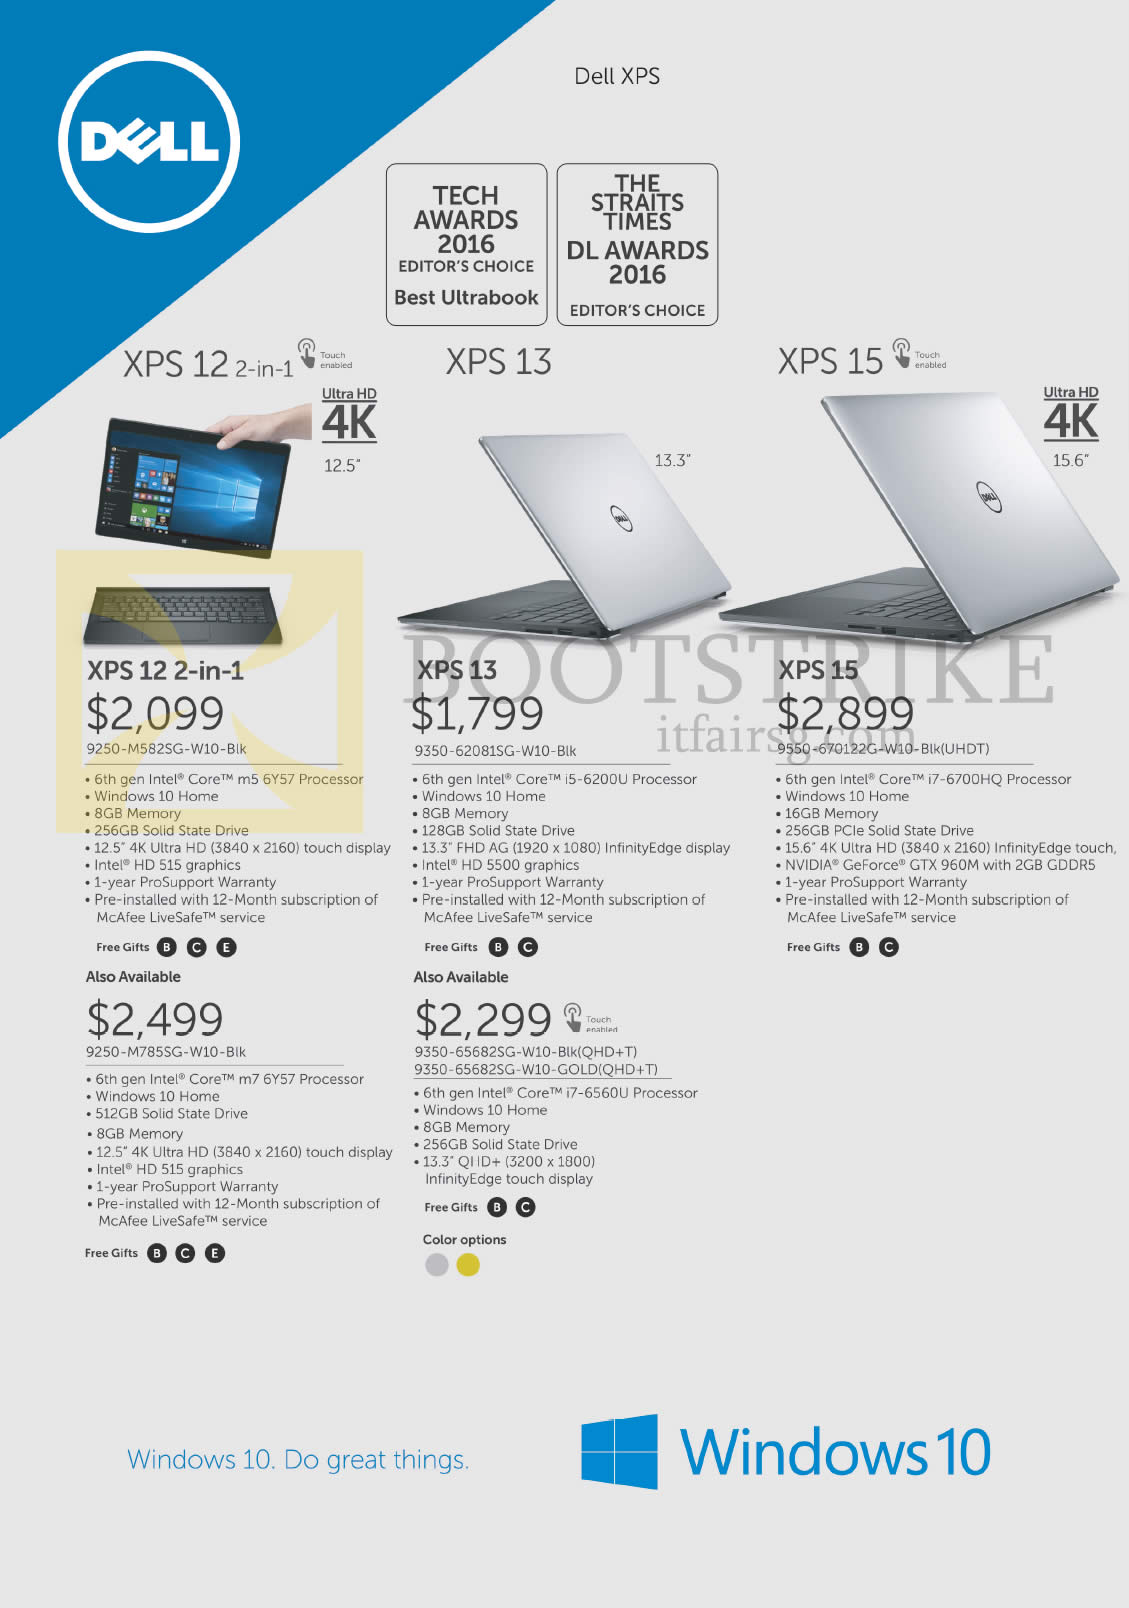 PC SHOW 2016 price list image brochure of Dell Notebooks XPS 12, 13, 15